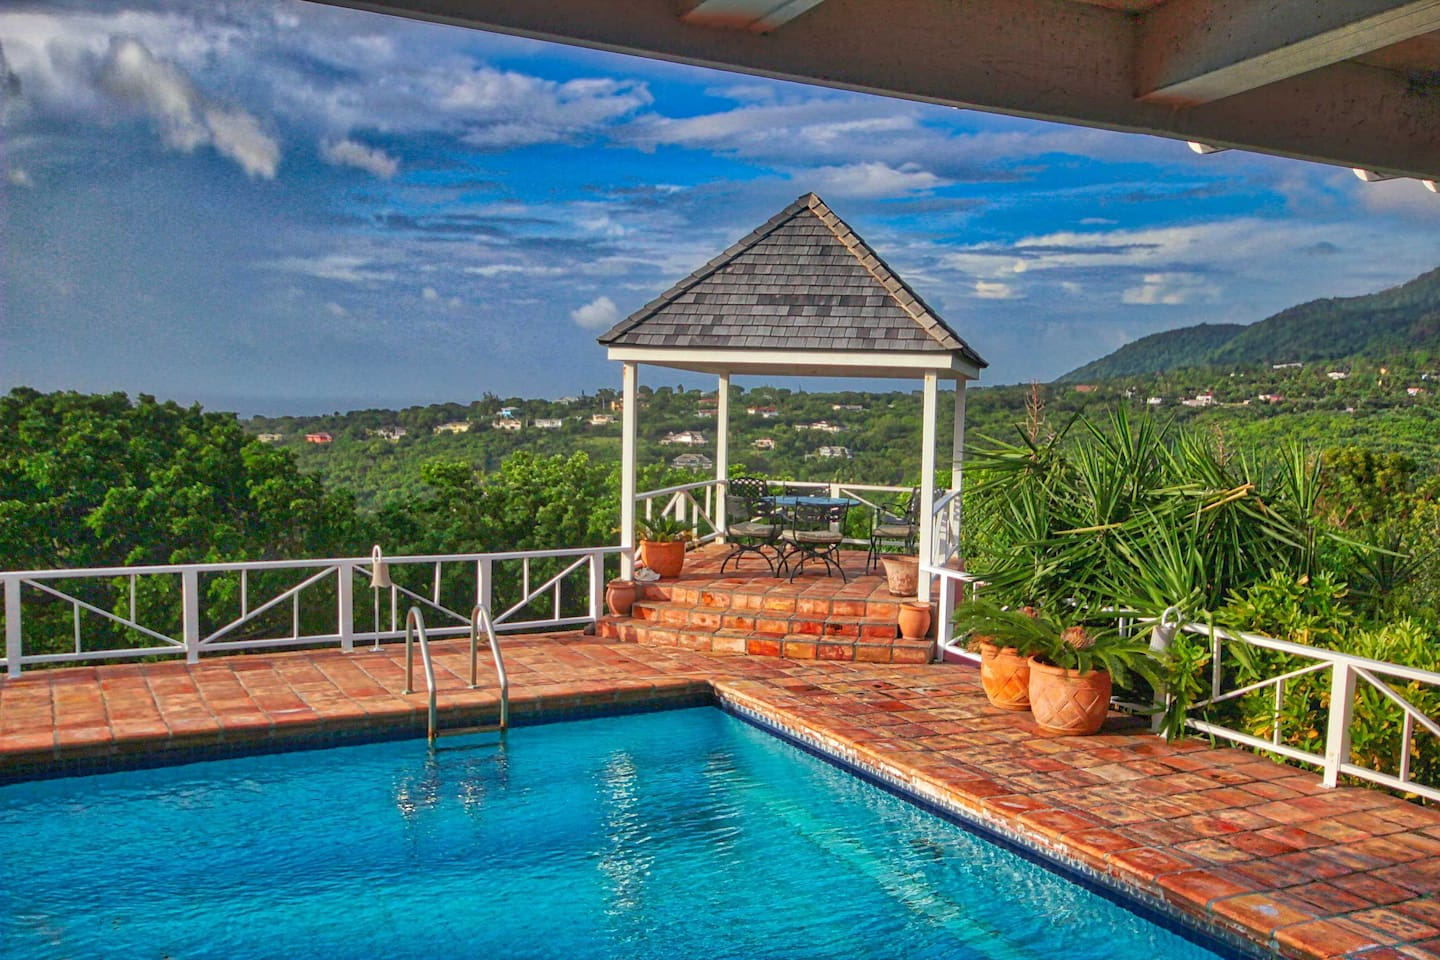 Amazing mountain views from gazebo, overlooking ocean to the other side.